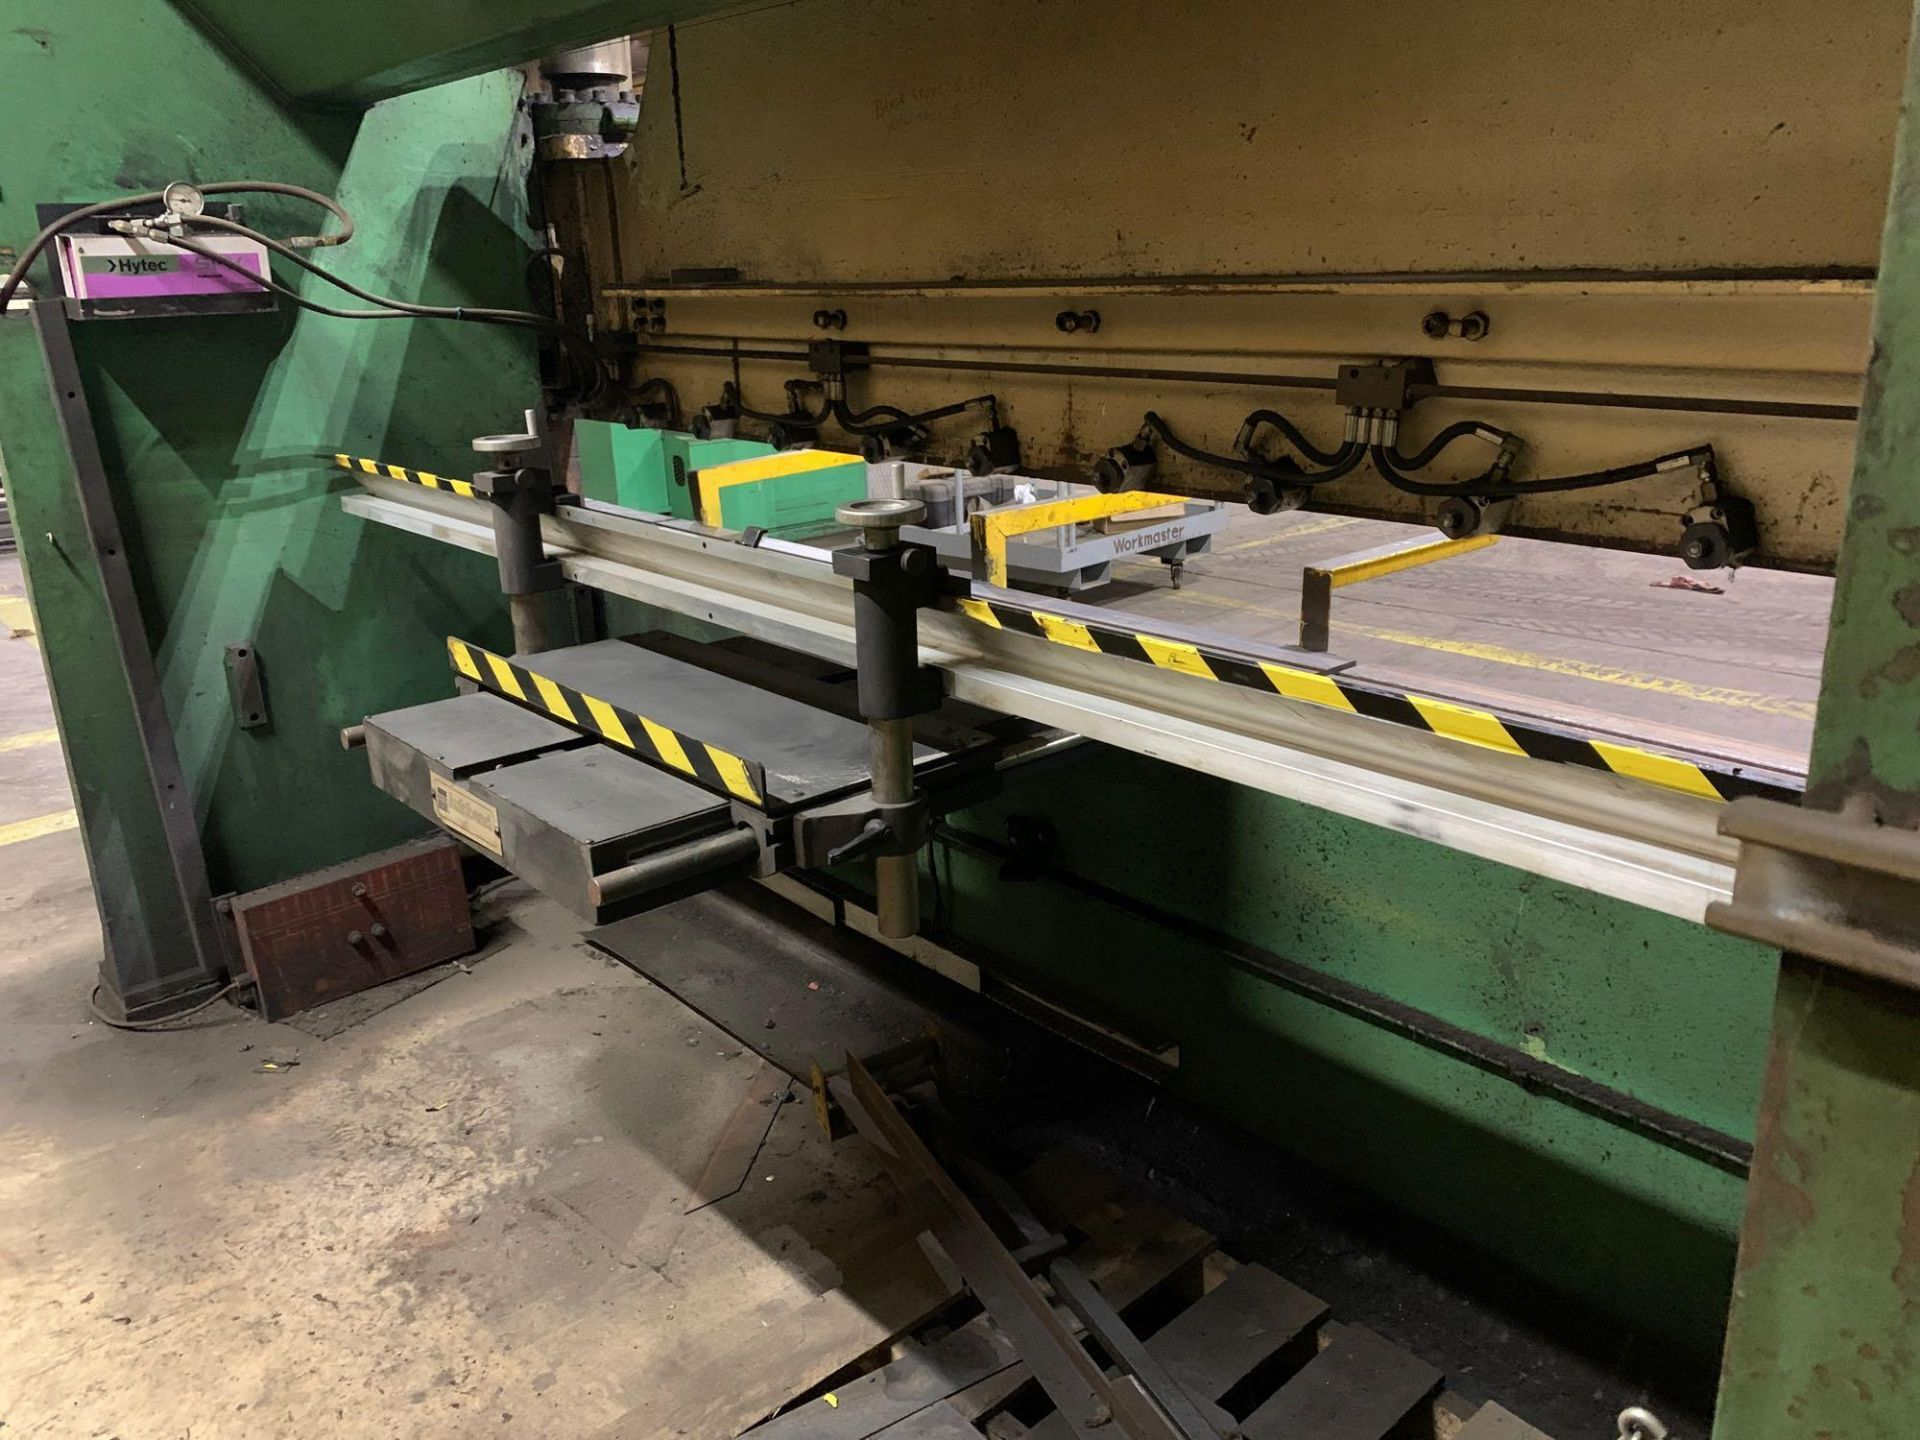 Chicago Dries & Krump Hydraulic Press Brake With: Hurco Autobend 7 Backgauge Control 200 Ton x 16' M - Image 24 of 41